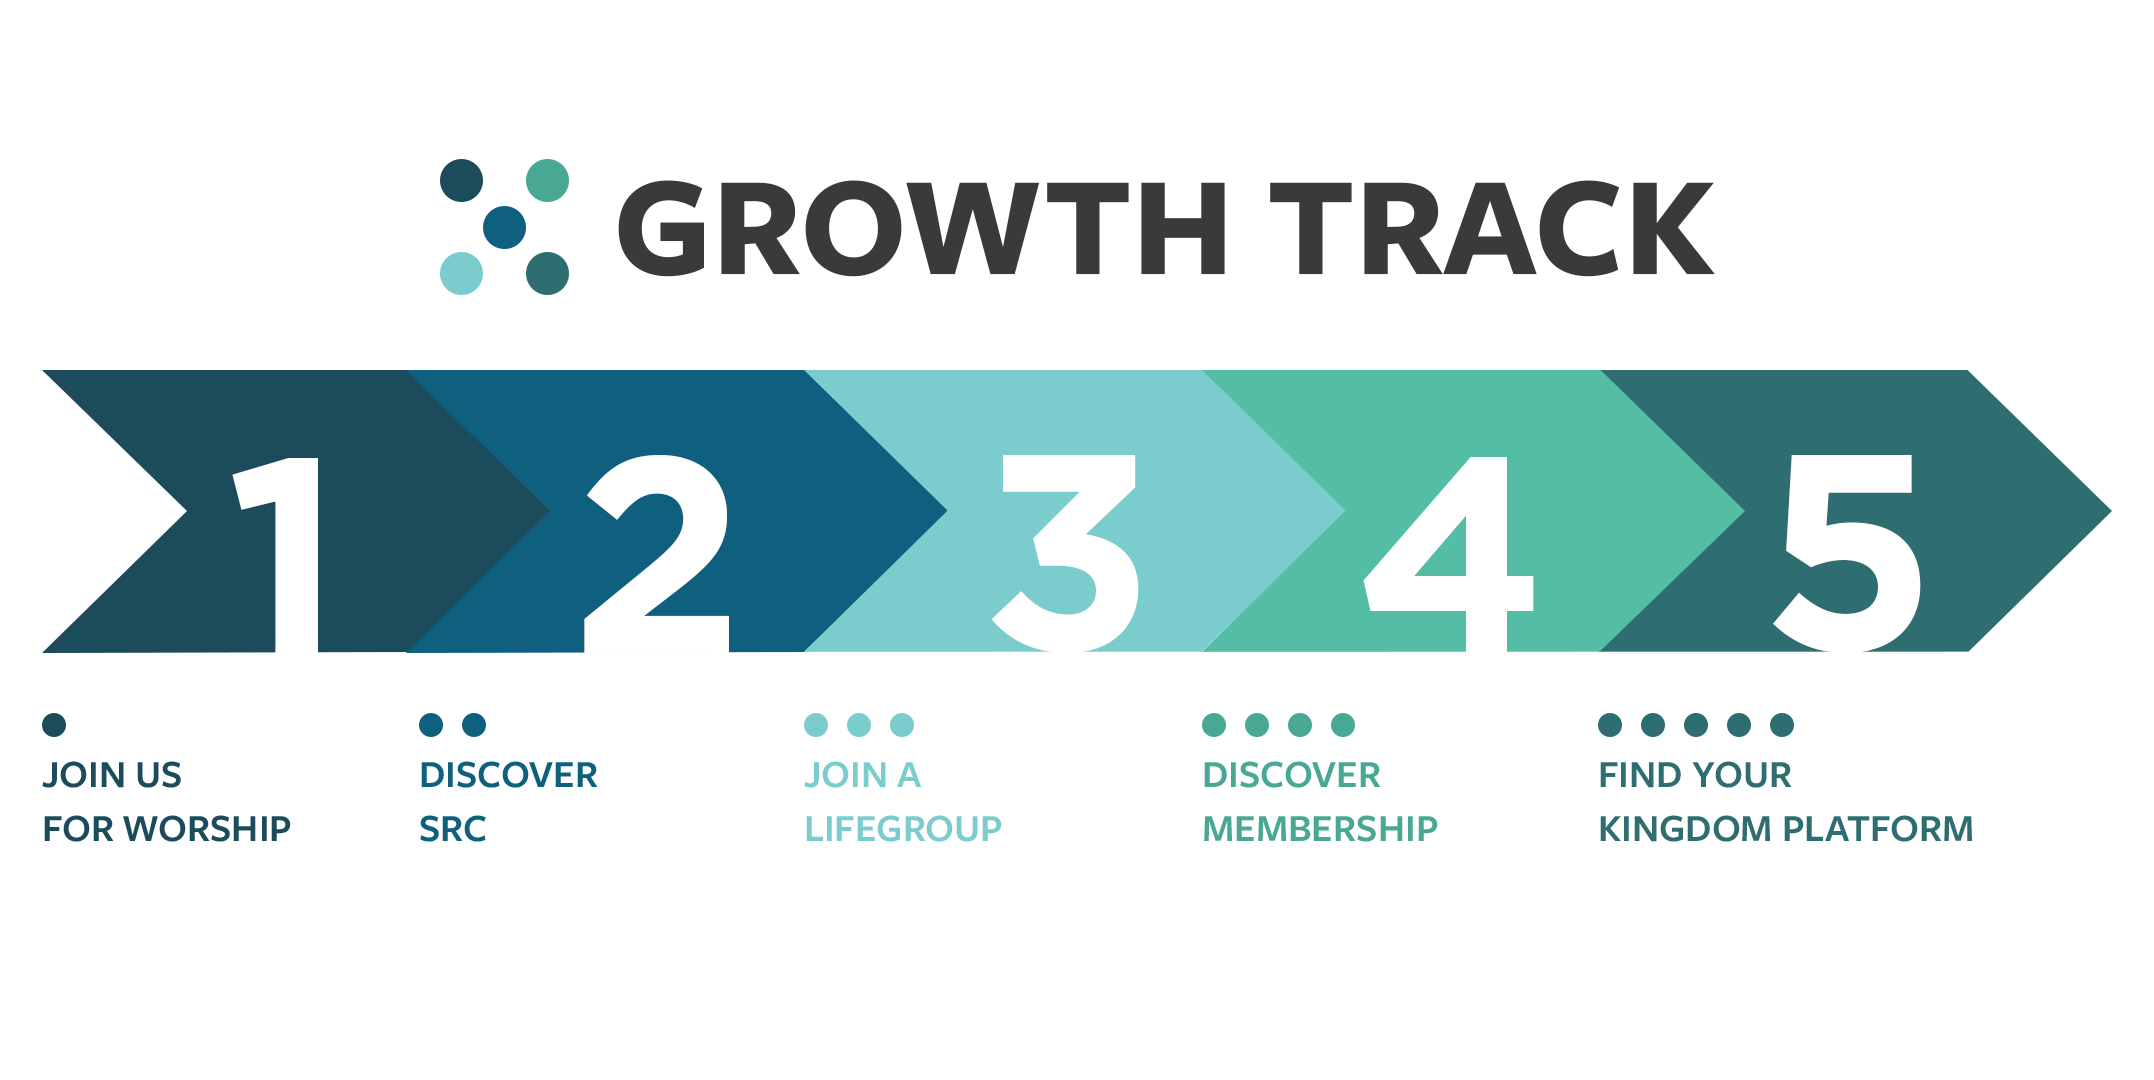 Growth Track v2.png